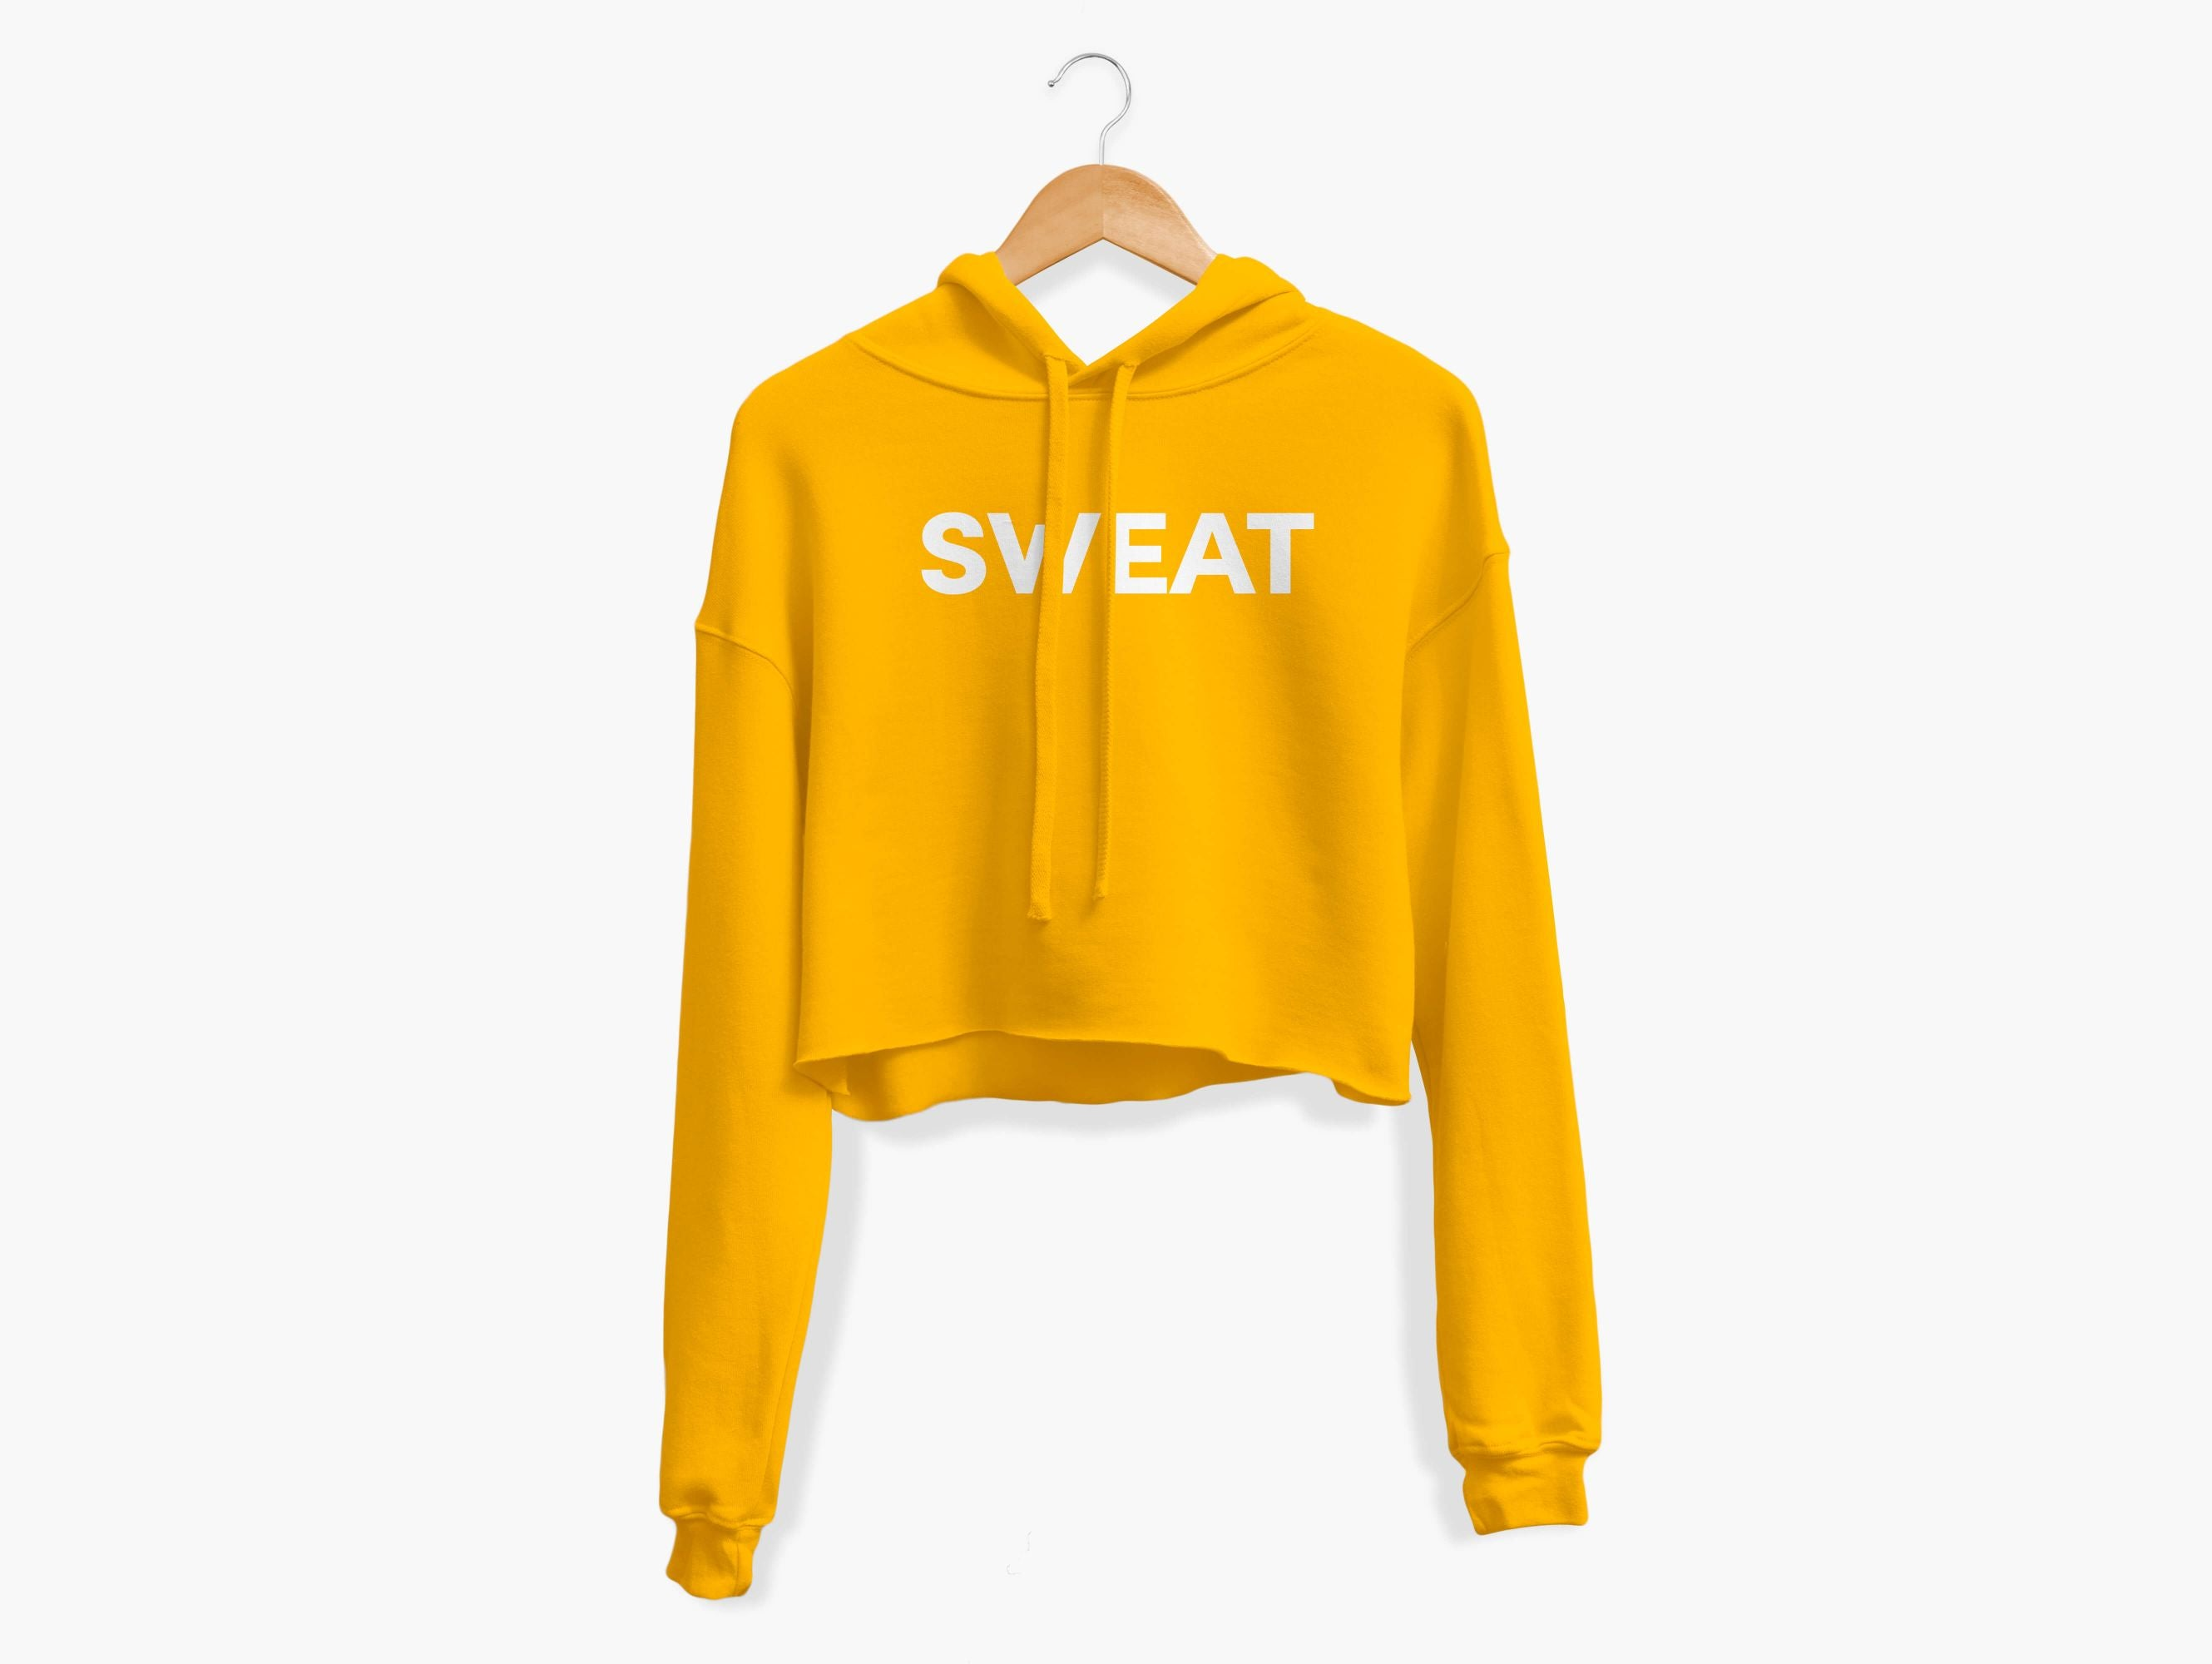 SWEAT Cropped Hoodie